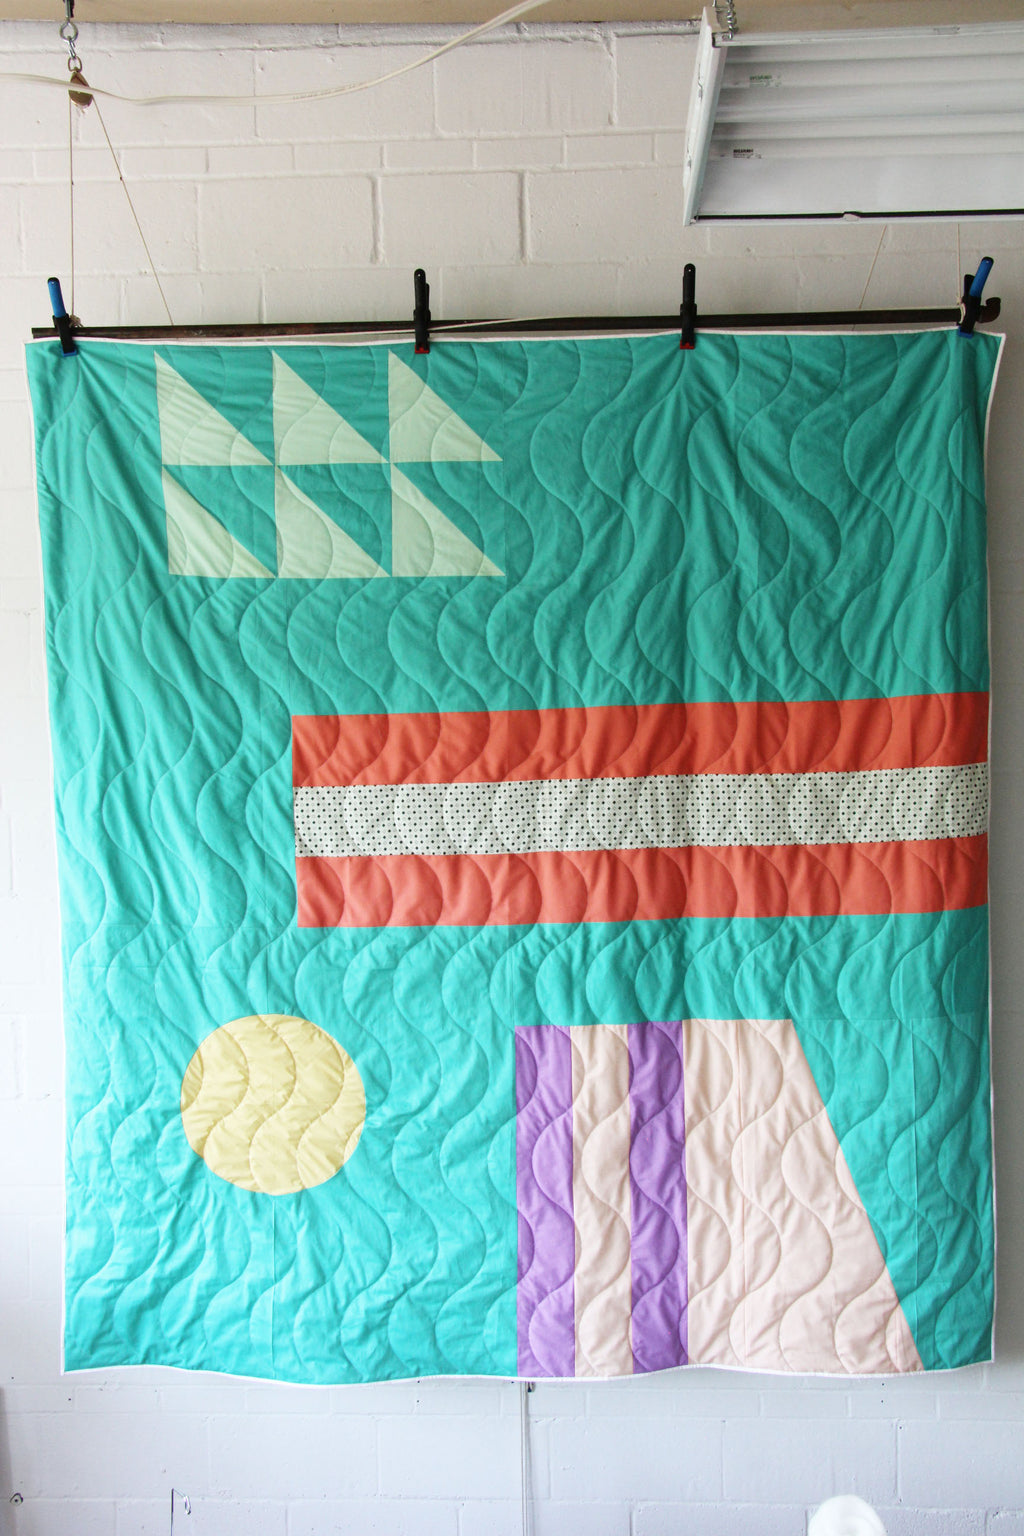 Double bed size quilt - Summer wave model